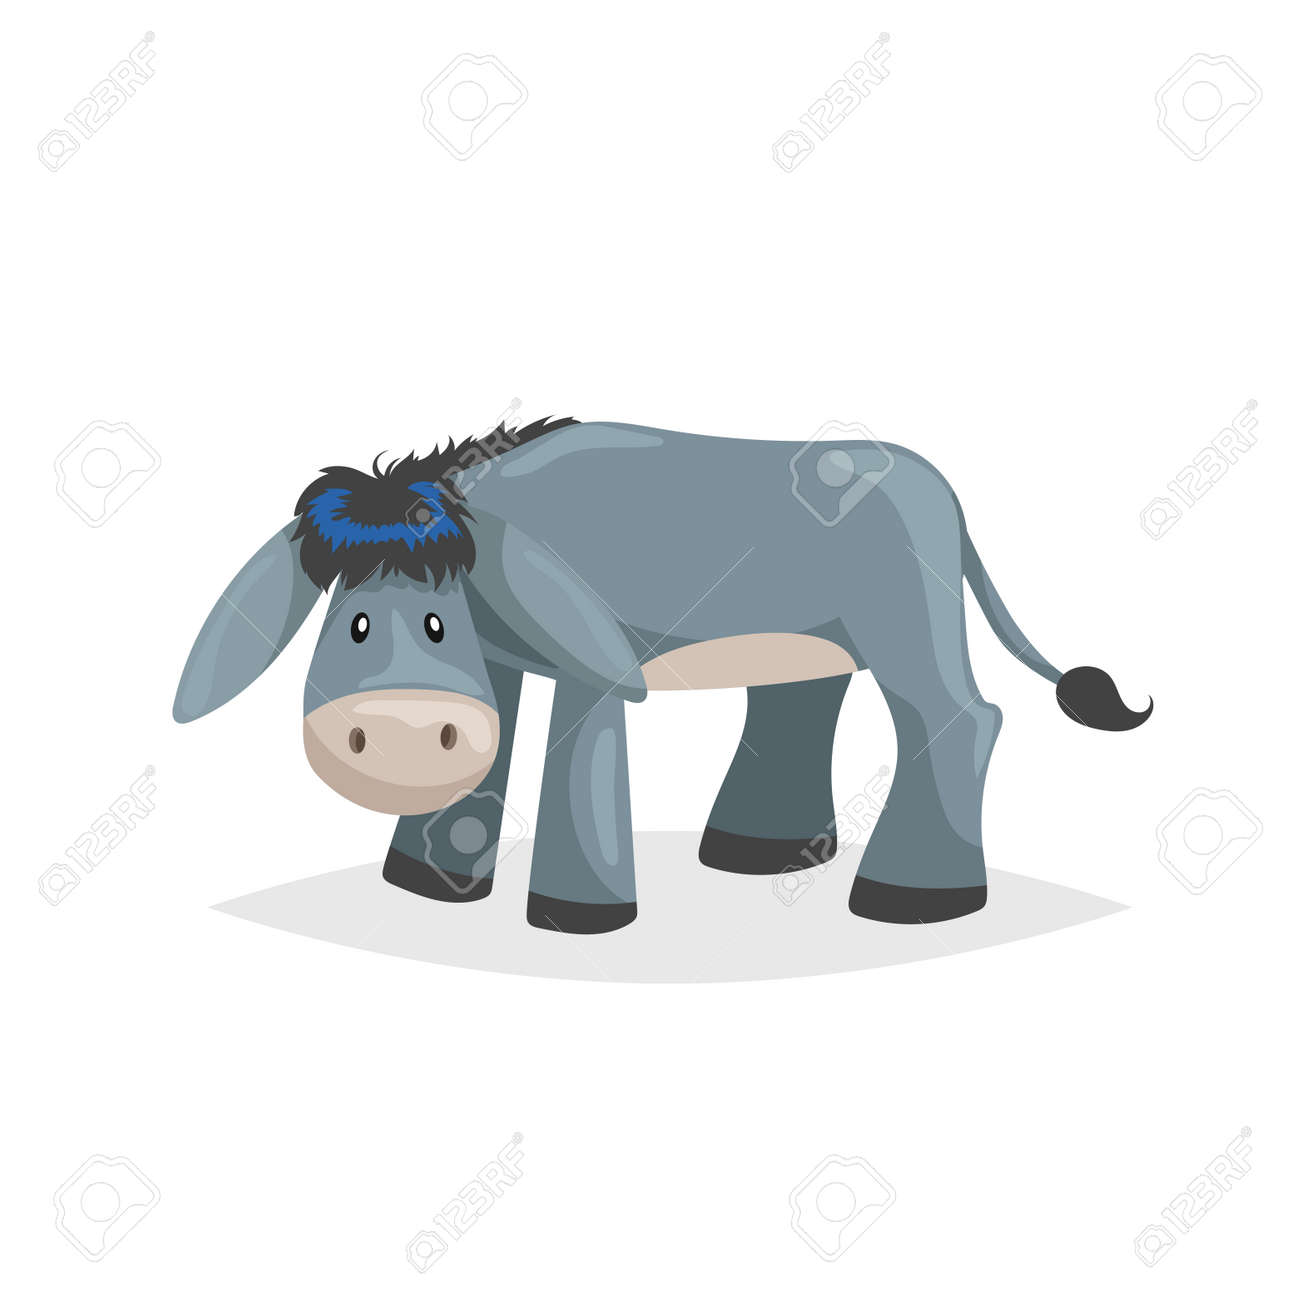 Cute cartoon donkey. Sad domestic farm animal. Vector illustration for education or comic needs. Vector drawing isolated on white background. - 123146624